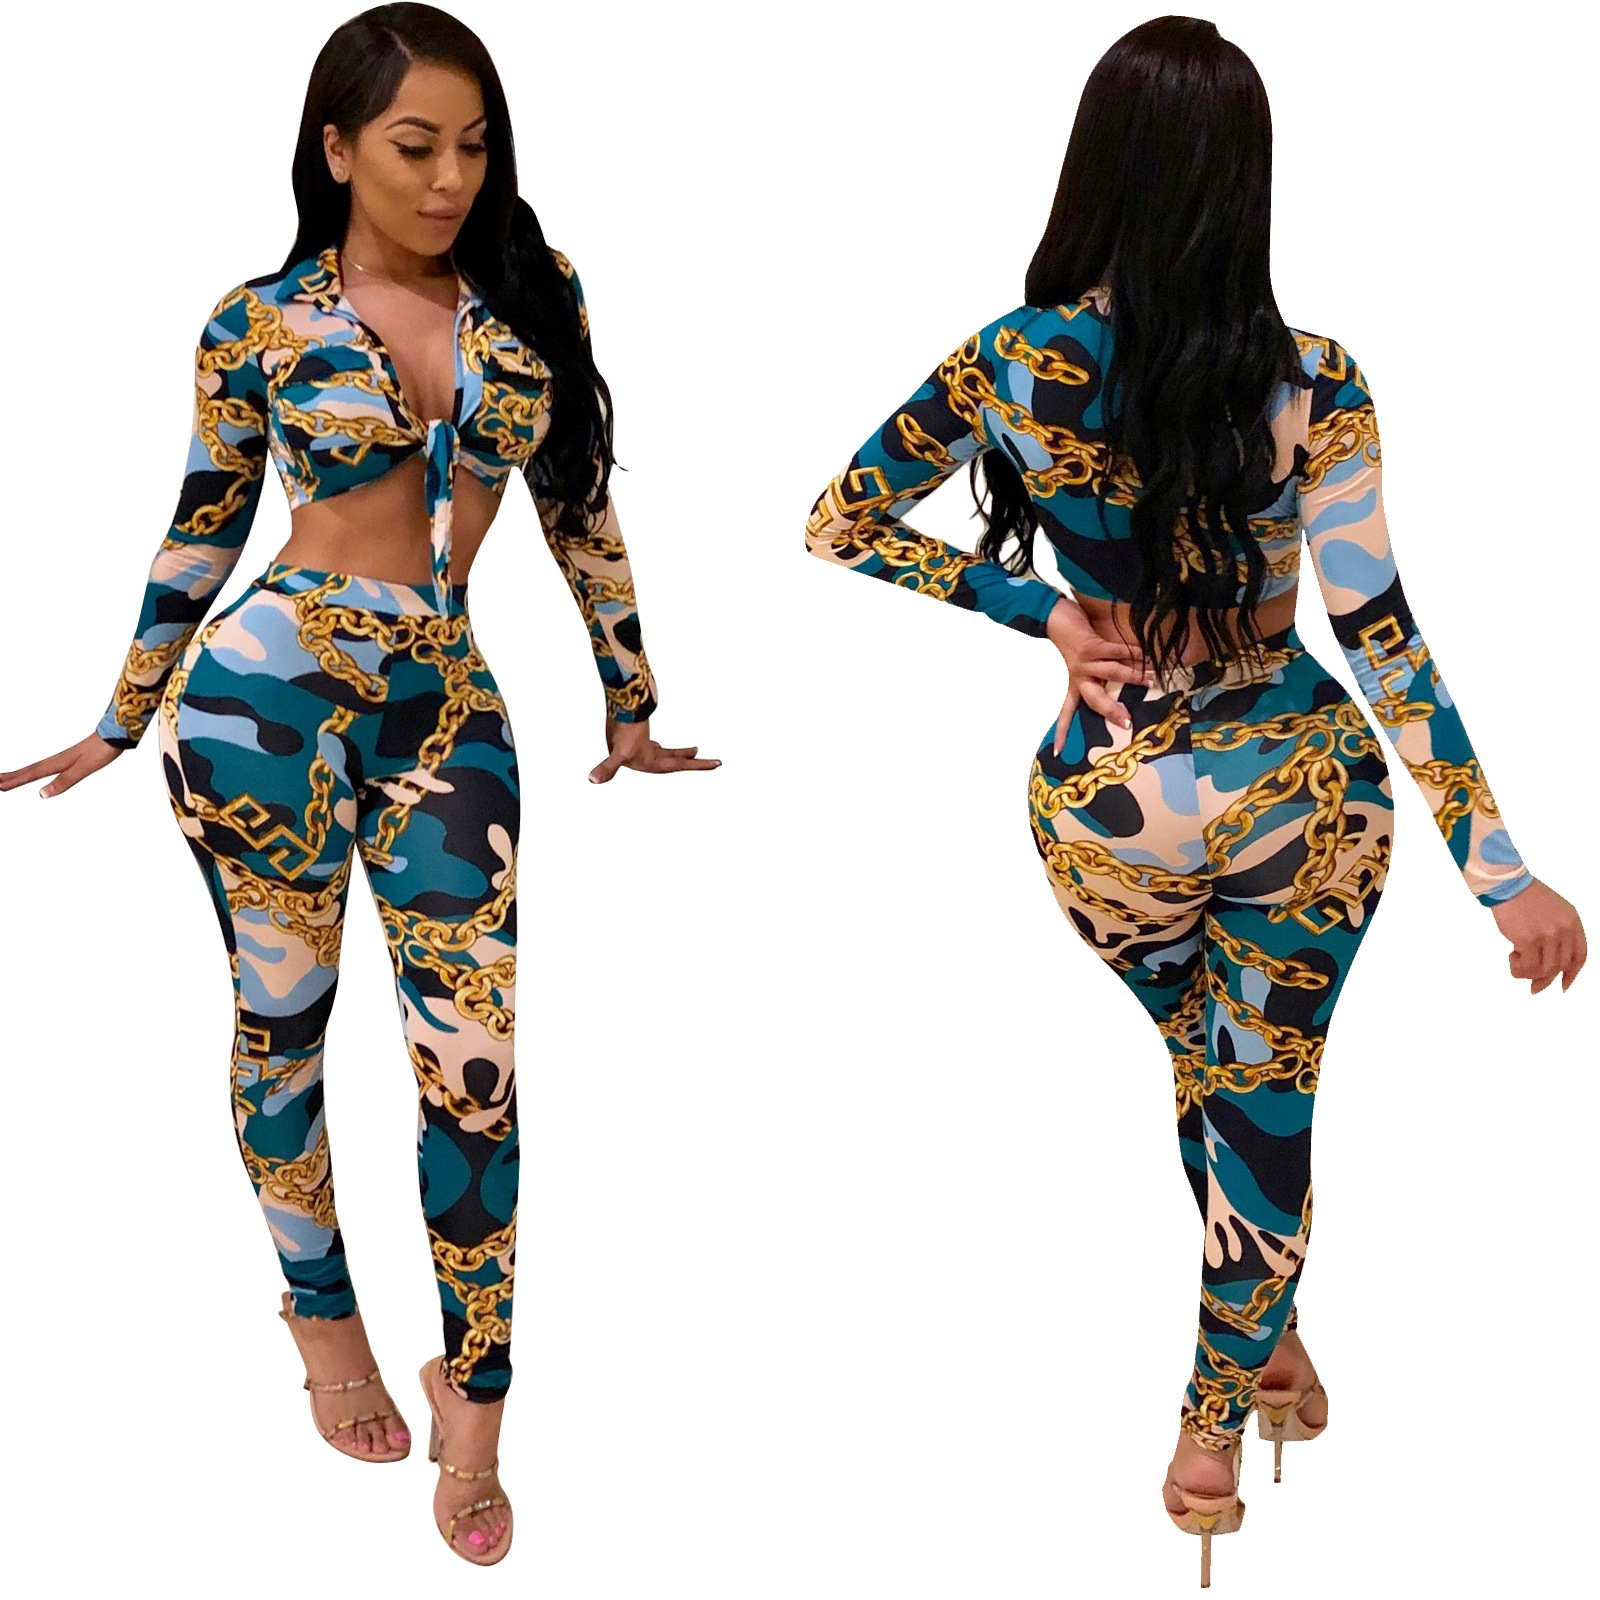 Currently Available 5540 A Generation Of Fat AliExpress EBay Dunhuang Amazon Hot Selling Europe And America-Printed Two-Piece Se